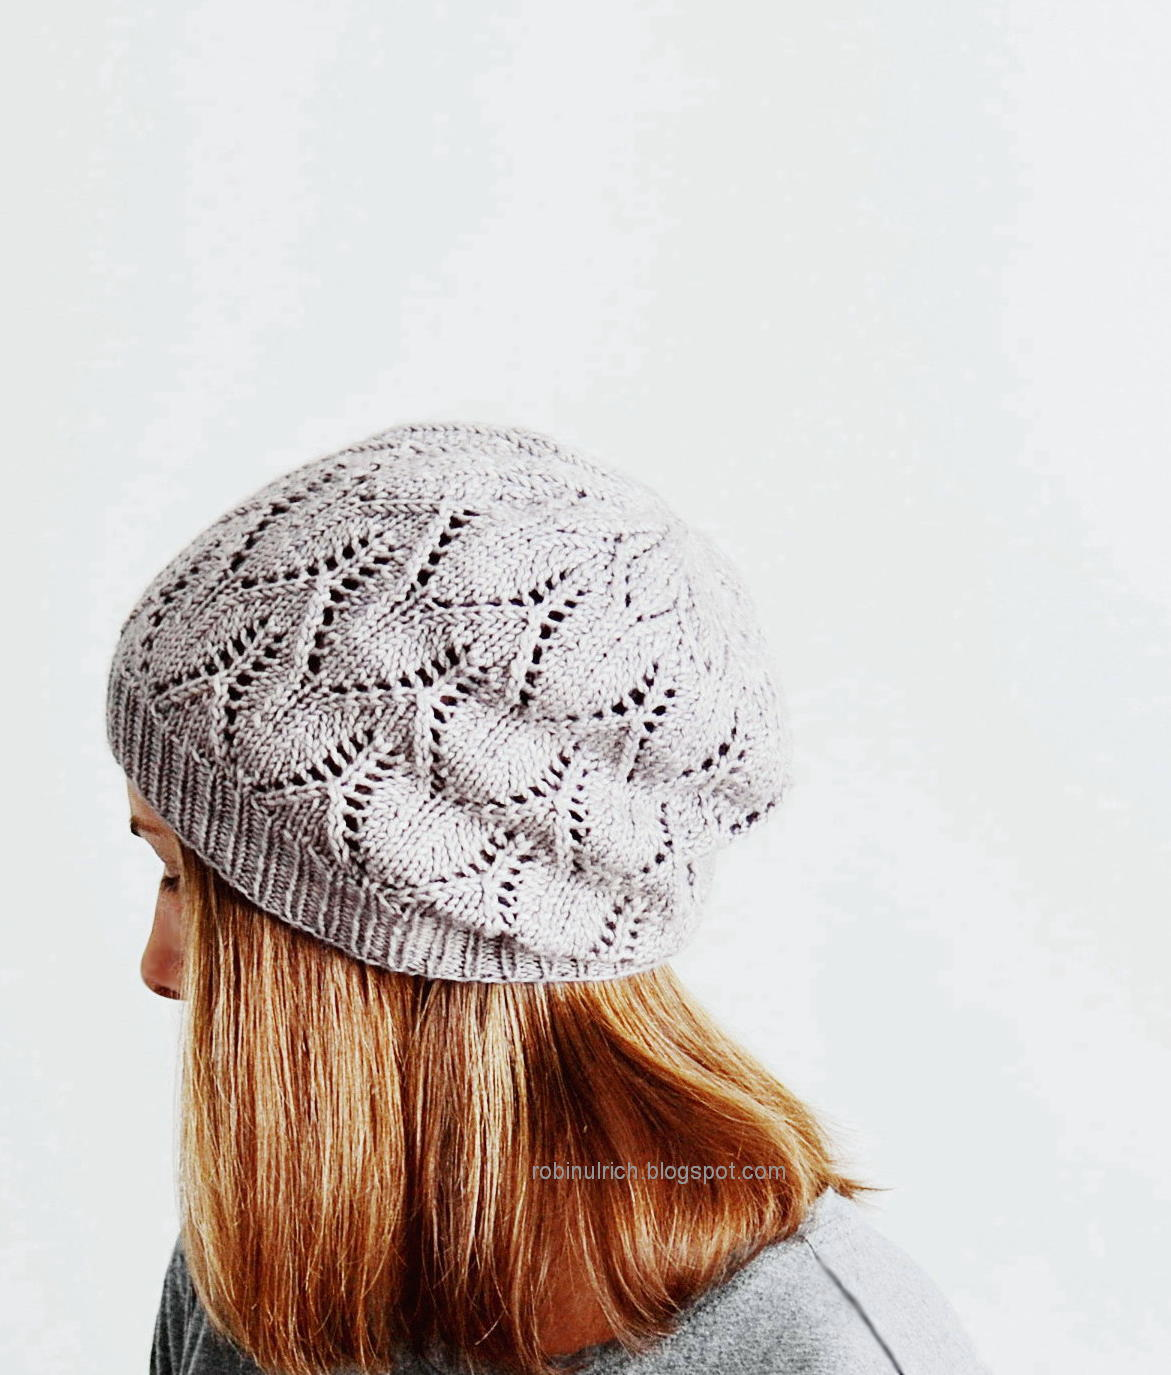 Free Knitting Pattern Lace Beanie : Robin Ulrich Studio: New Knitting Pattern - Greyhaven Hat